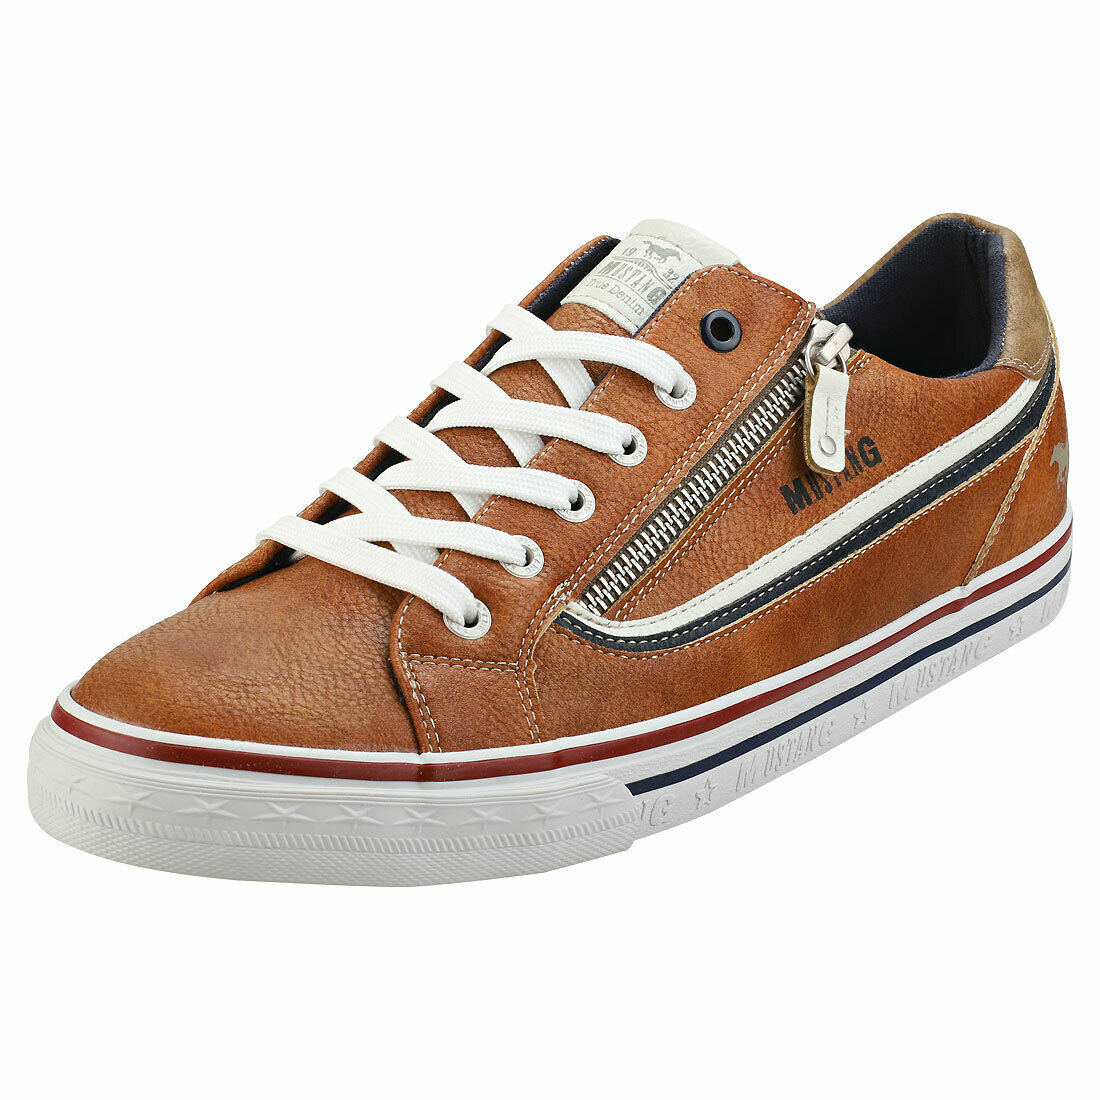 Mustang Lace Up Side Zip Mens Cognac Casual Trainers - 8 UK